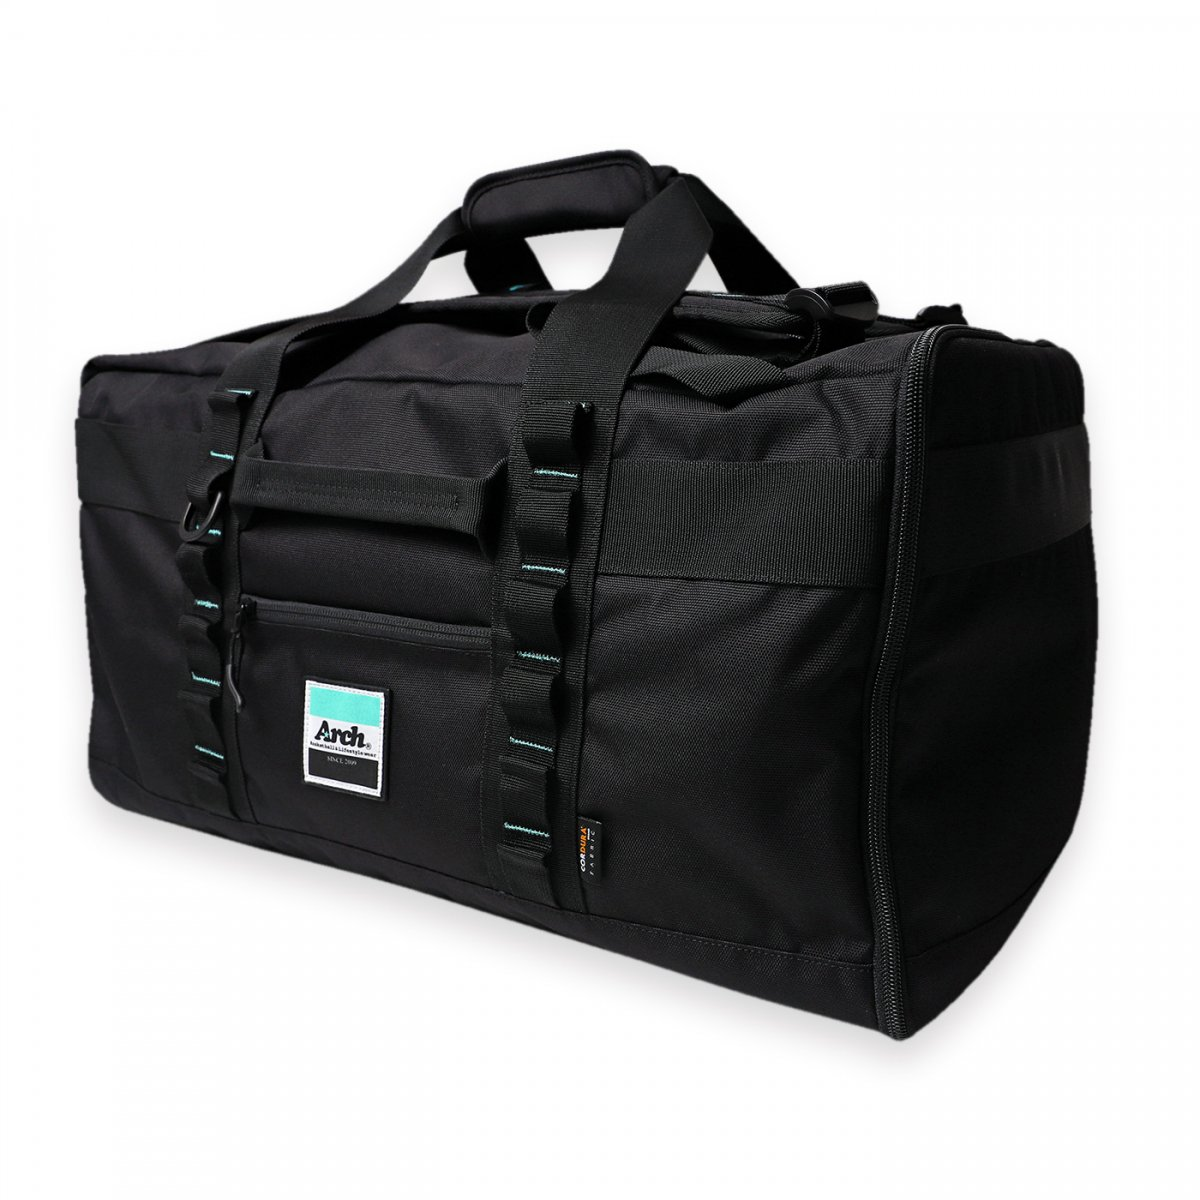 tour duffel bag 【black】